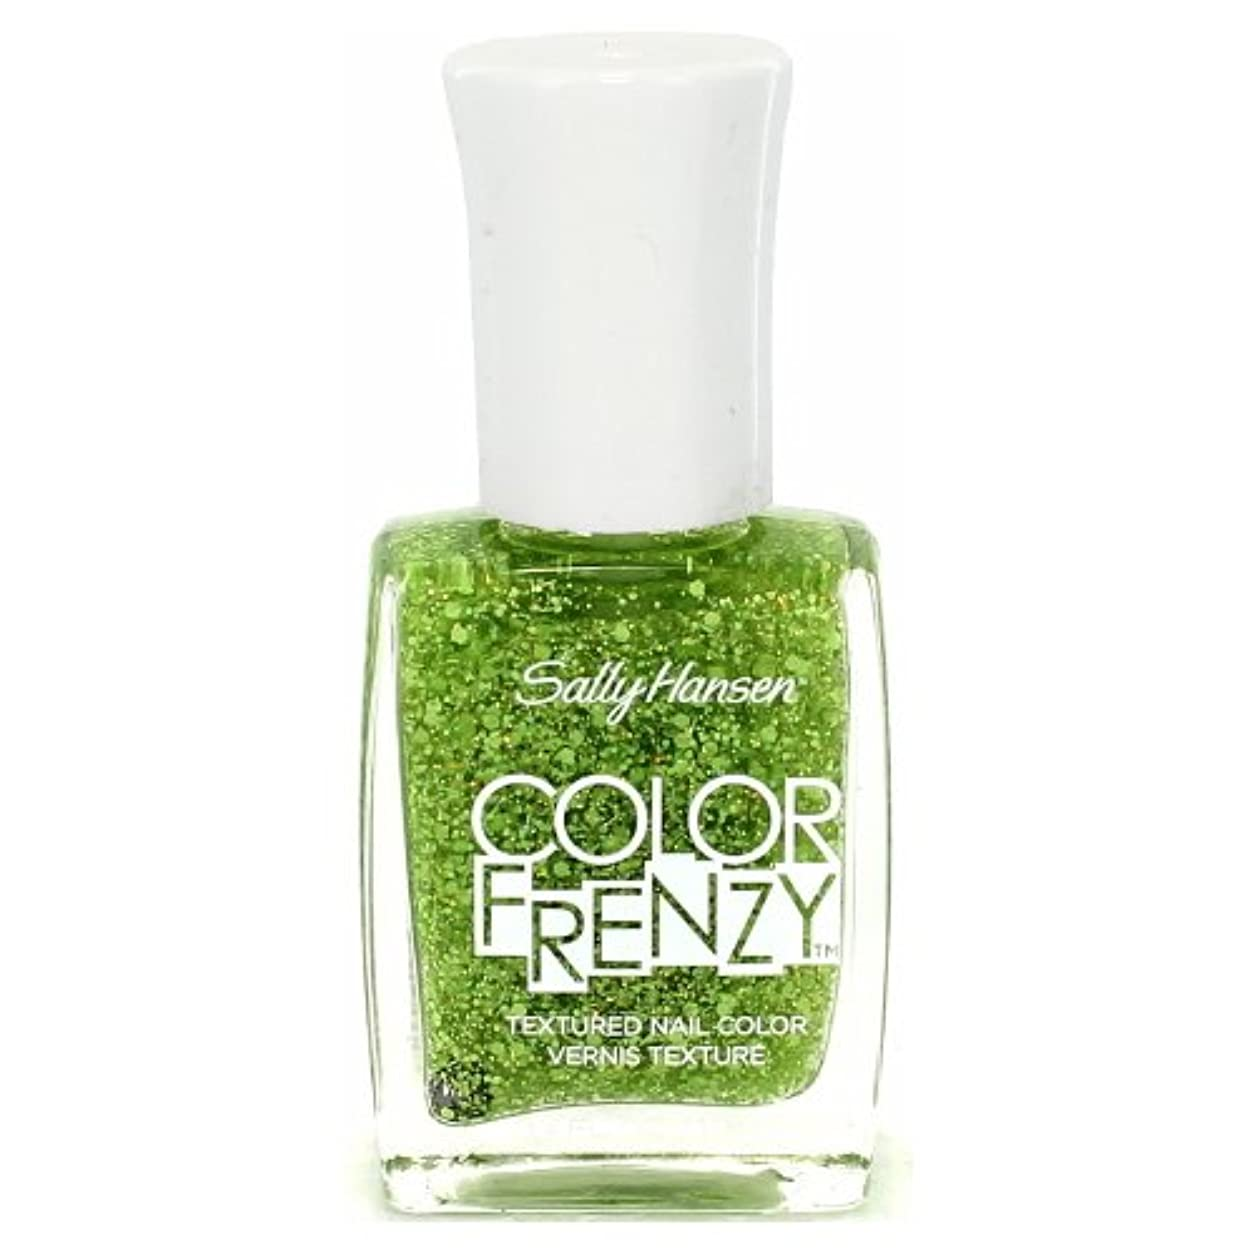 作成する白雪姫生命体(3 Pack) SALLY HANSEN Color Frenzy Textured Nail Color - Green Machine (並行輸入品)